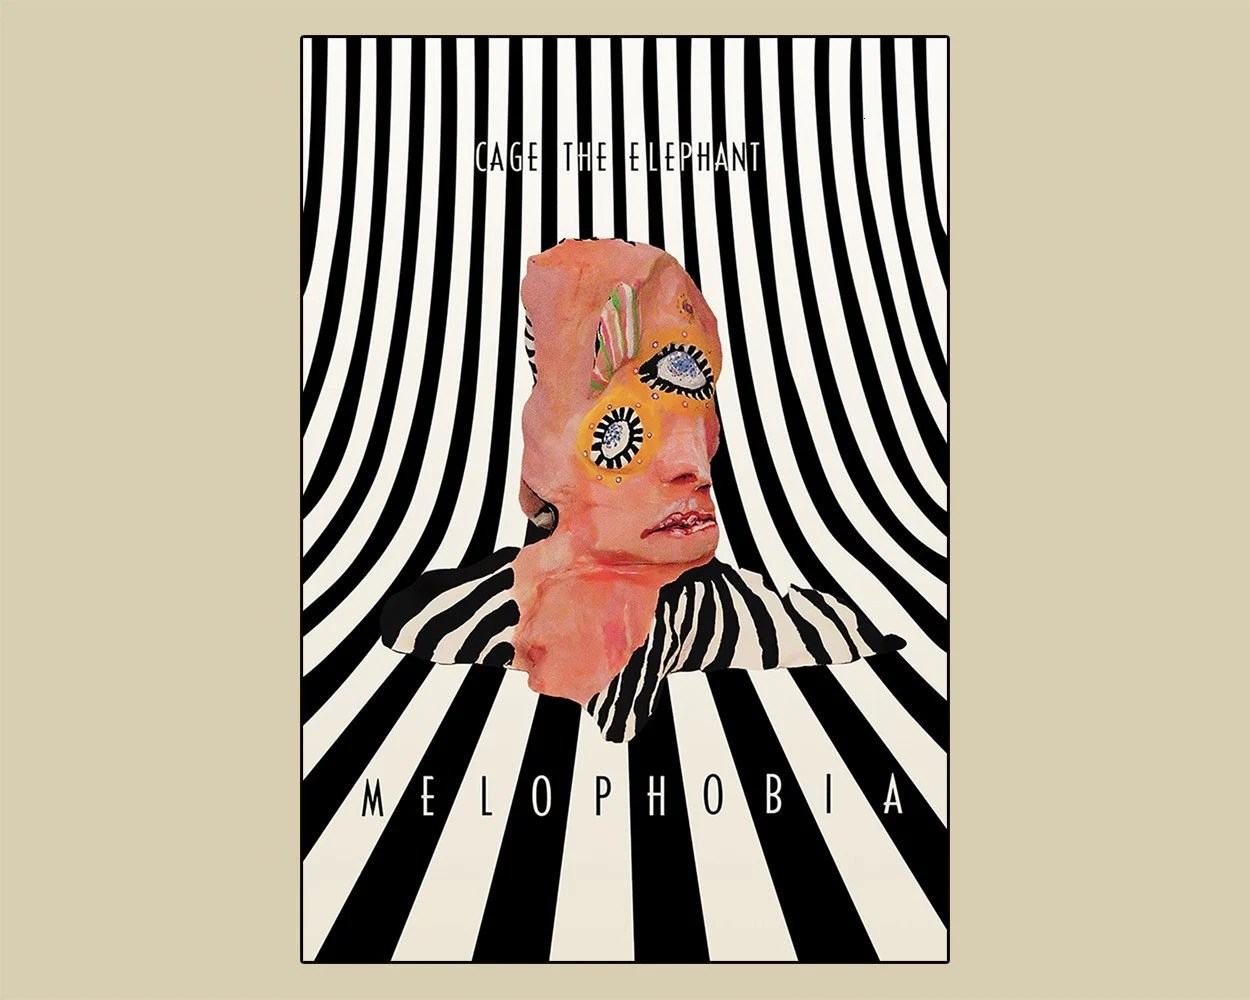 cage the elephant poster etsy